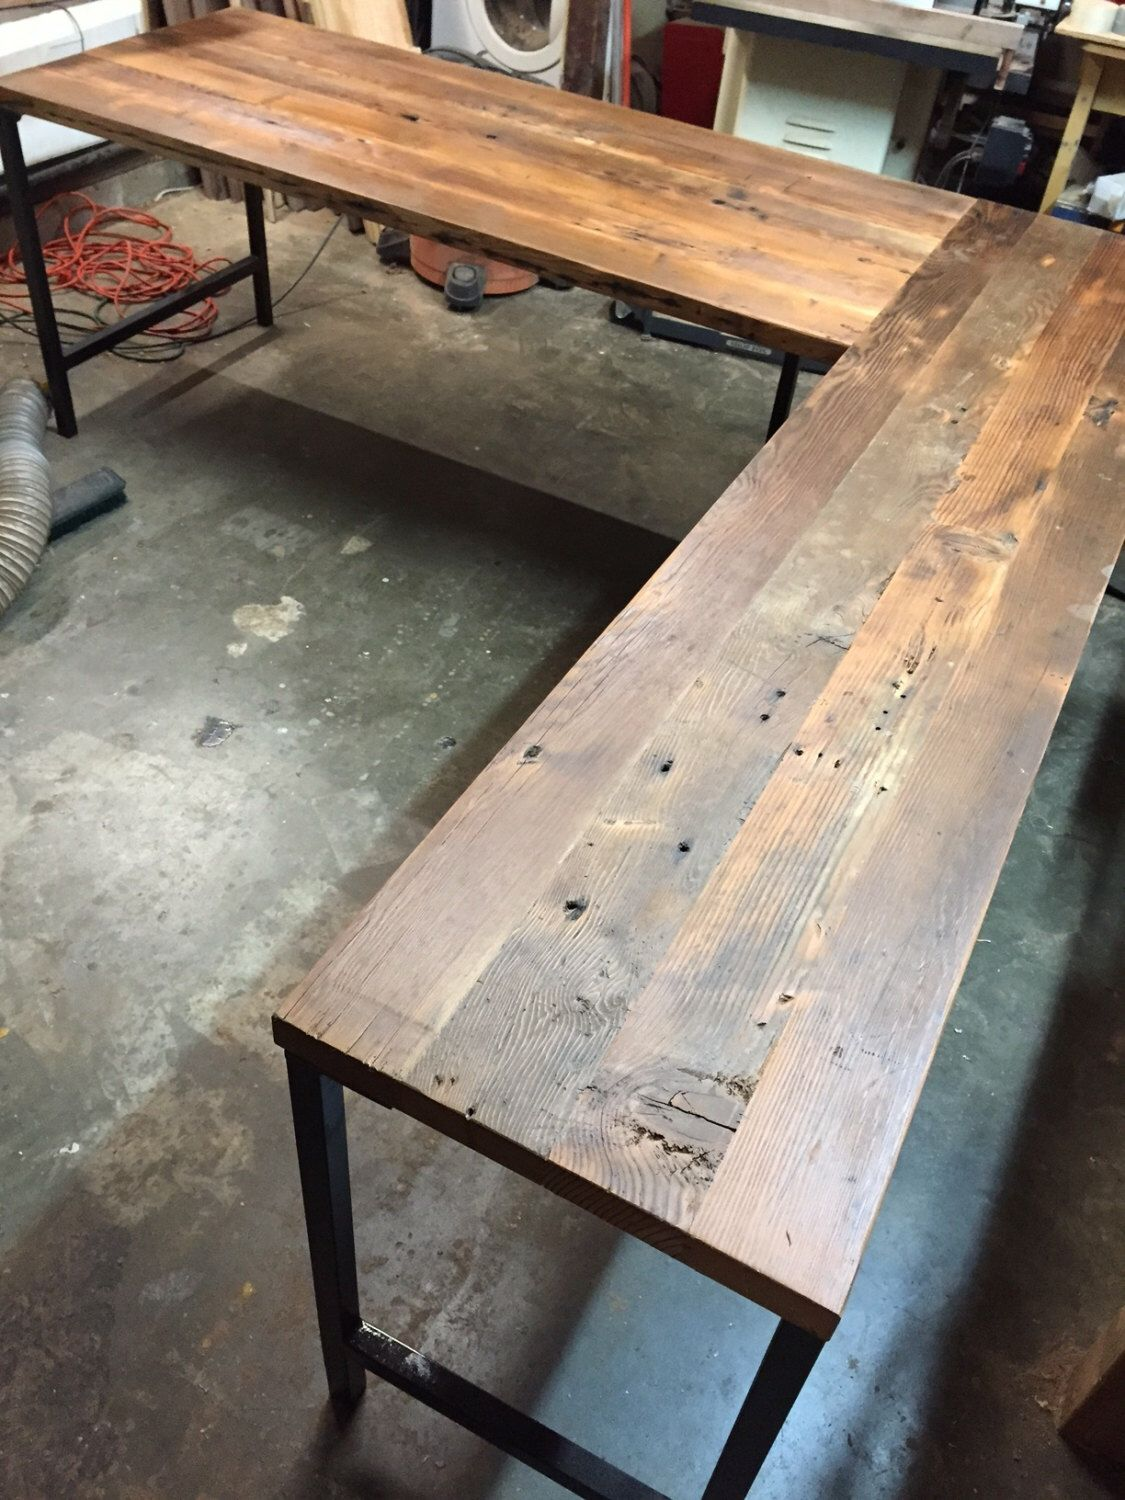 l shaped desk  reclaimed wood desk  industrial modern desk by  - l shaped desk  reclaimed wood desk  industrial modern desk byguicewoodworks on etsy https